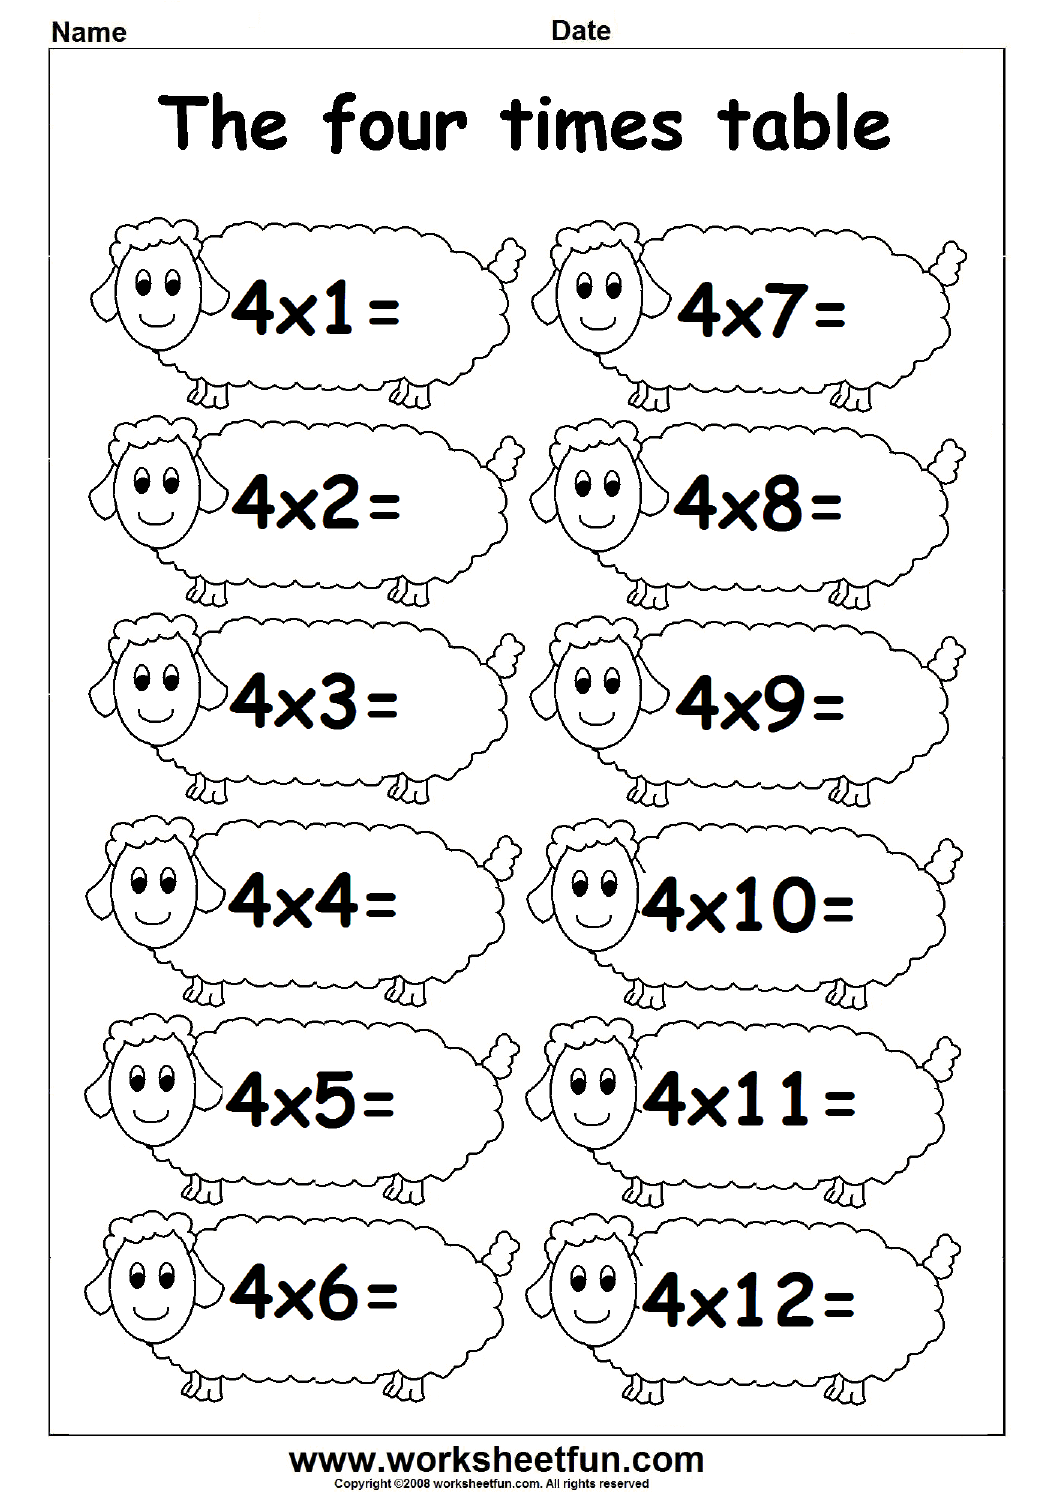 hight resolution of Pin by www.worksheetfun .com on Printable Worksheets   Times tables  worksheets